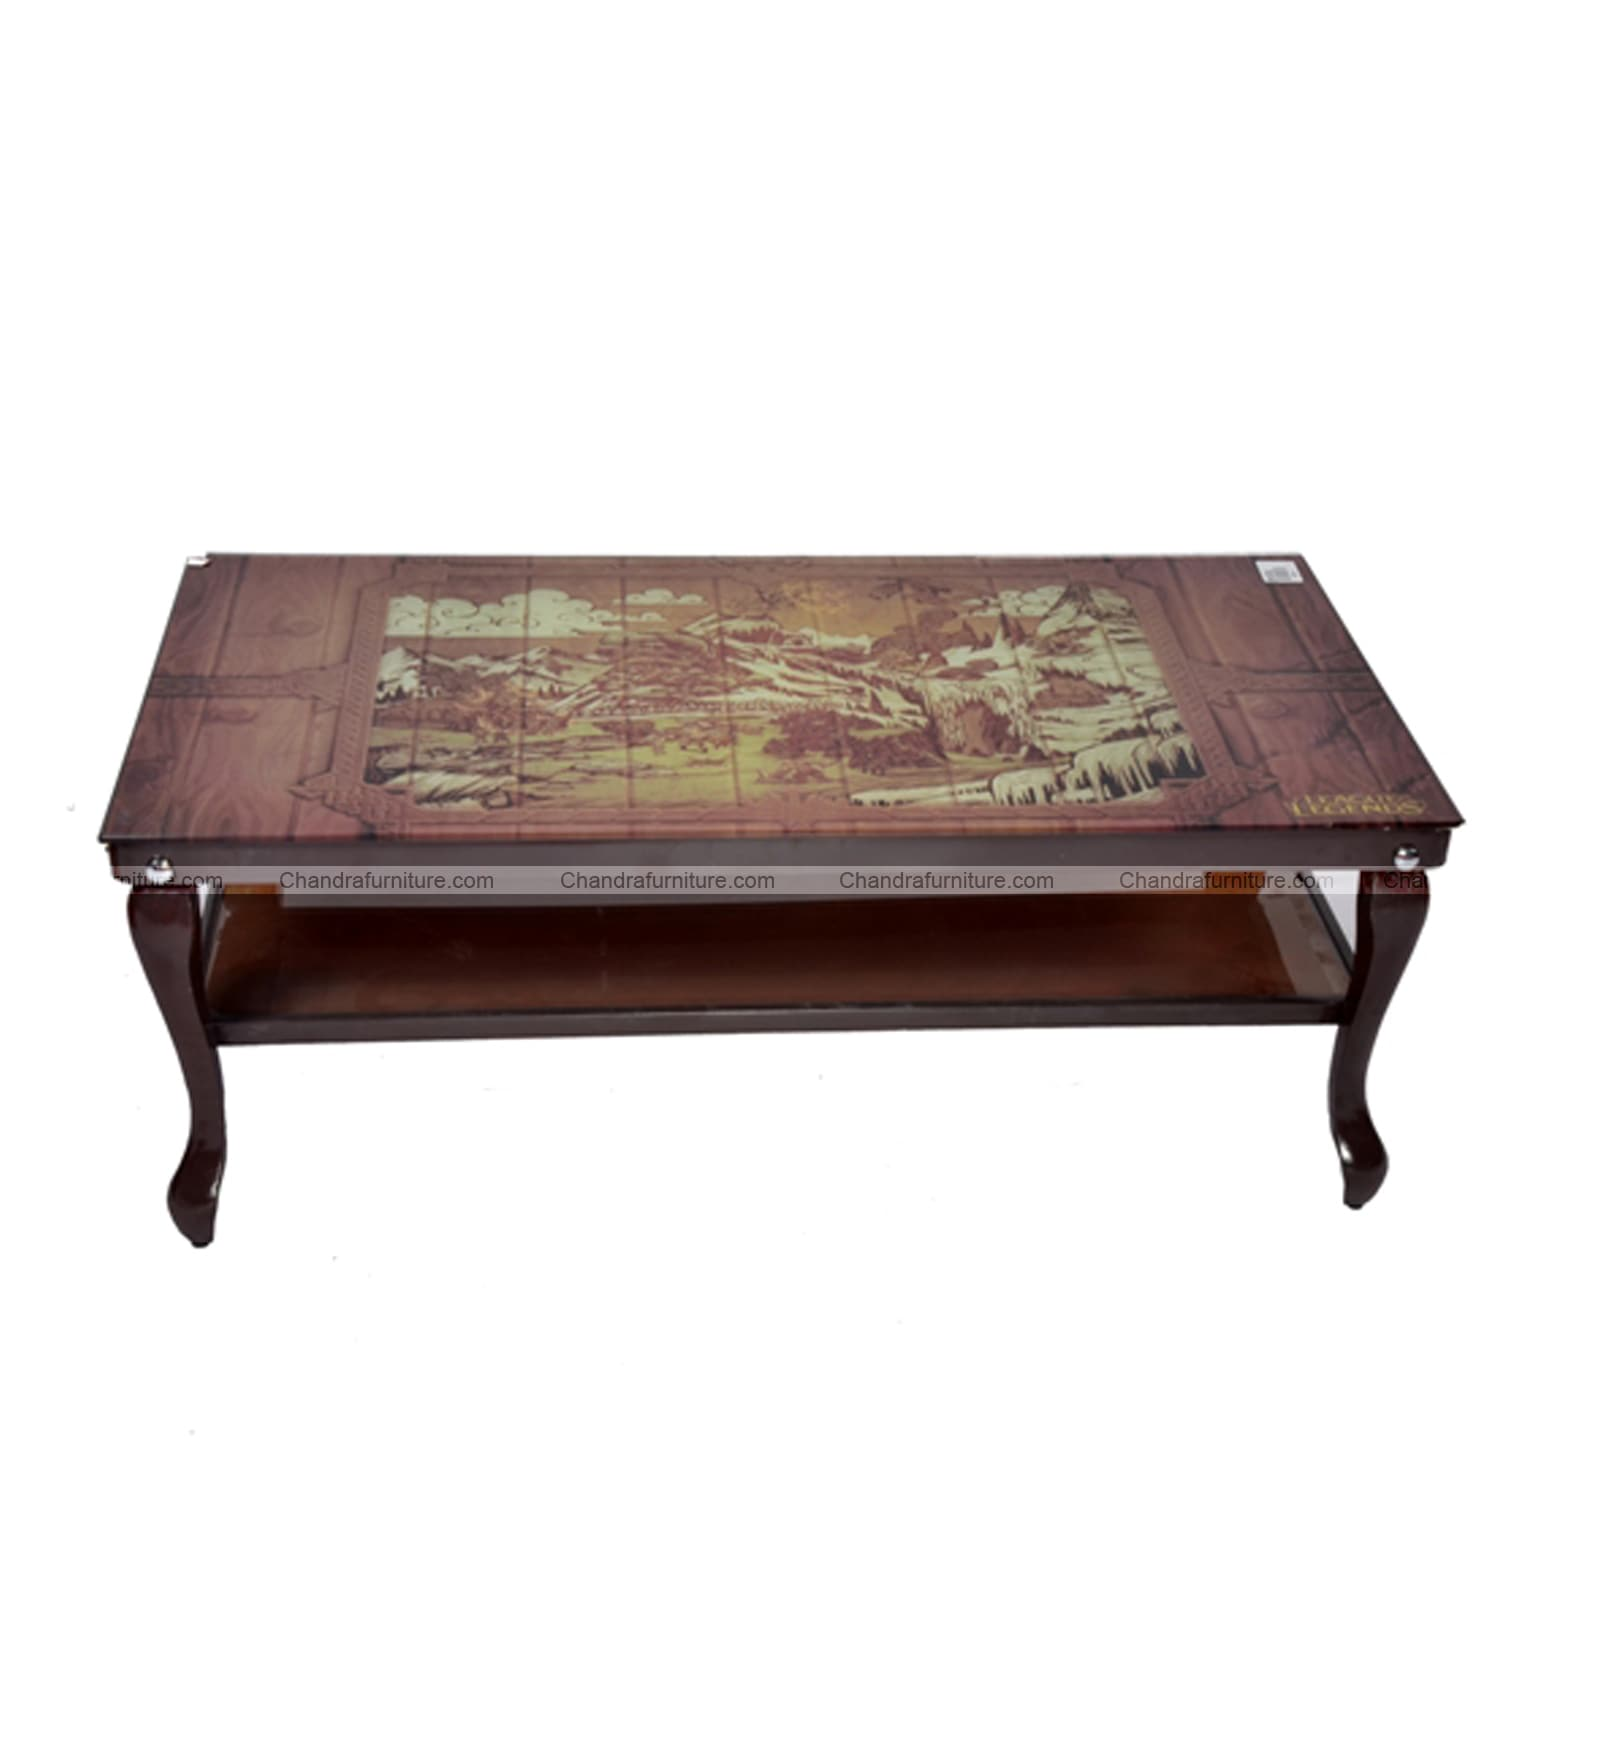 CHANDRA FURNITURE CENTER TABLE  C-08#